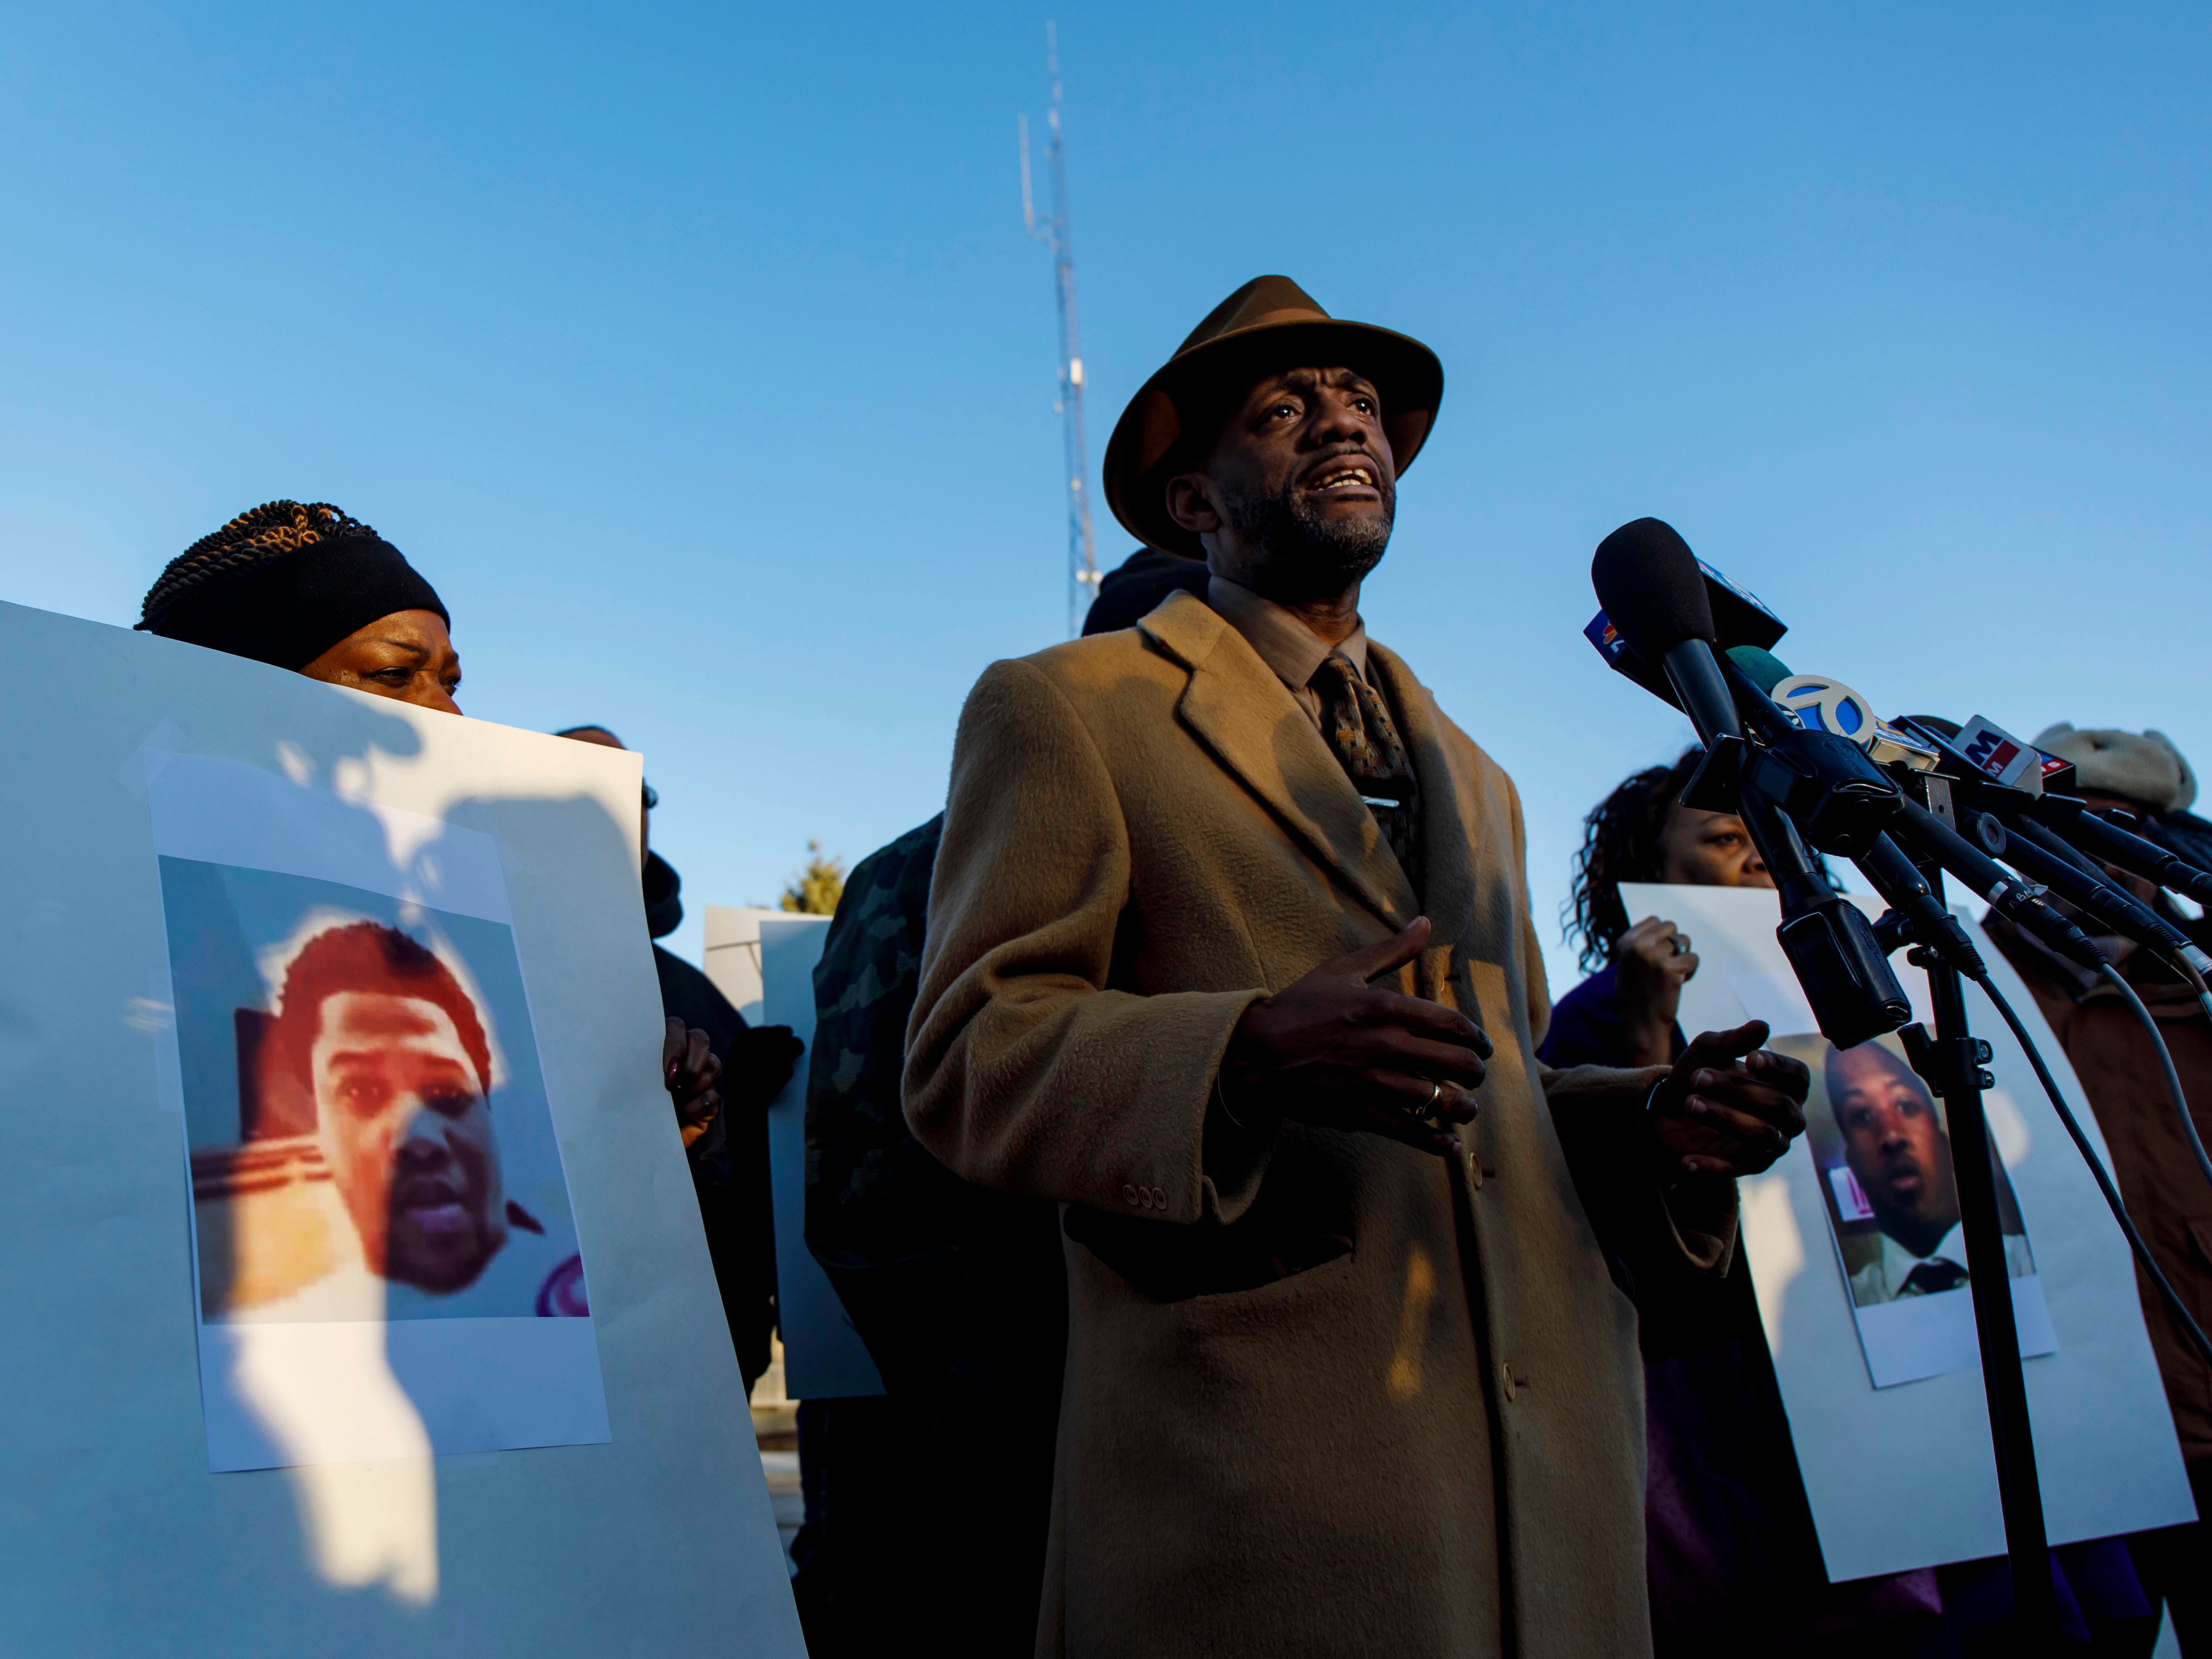 Jemel Roberson's avoidable death: Reform deadly force laws, require police to de-escalate